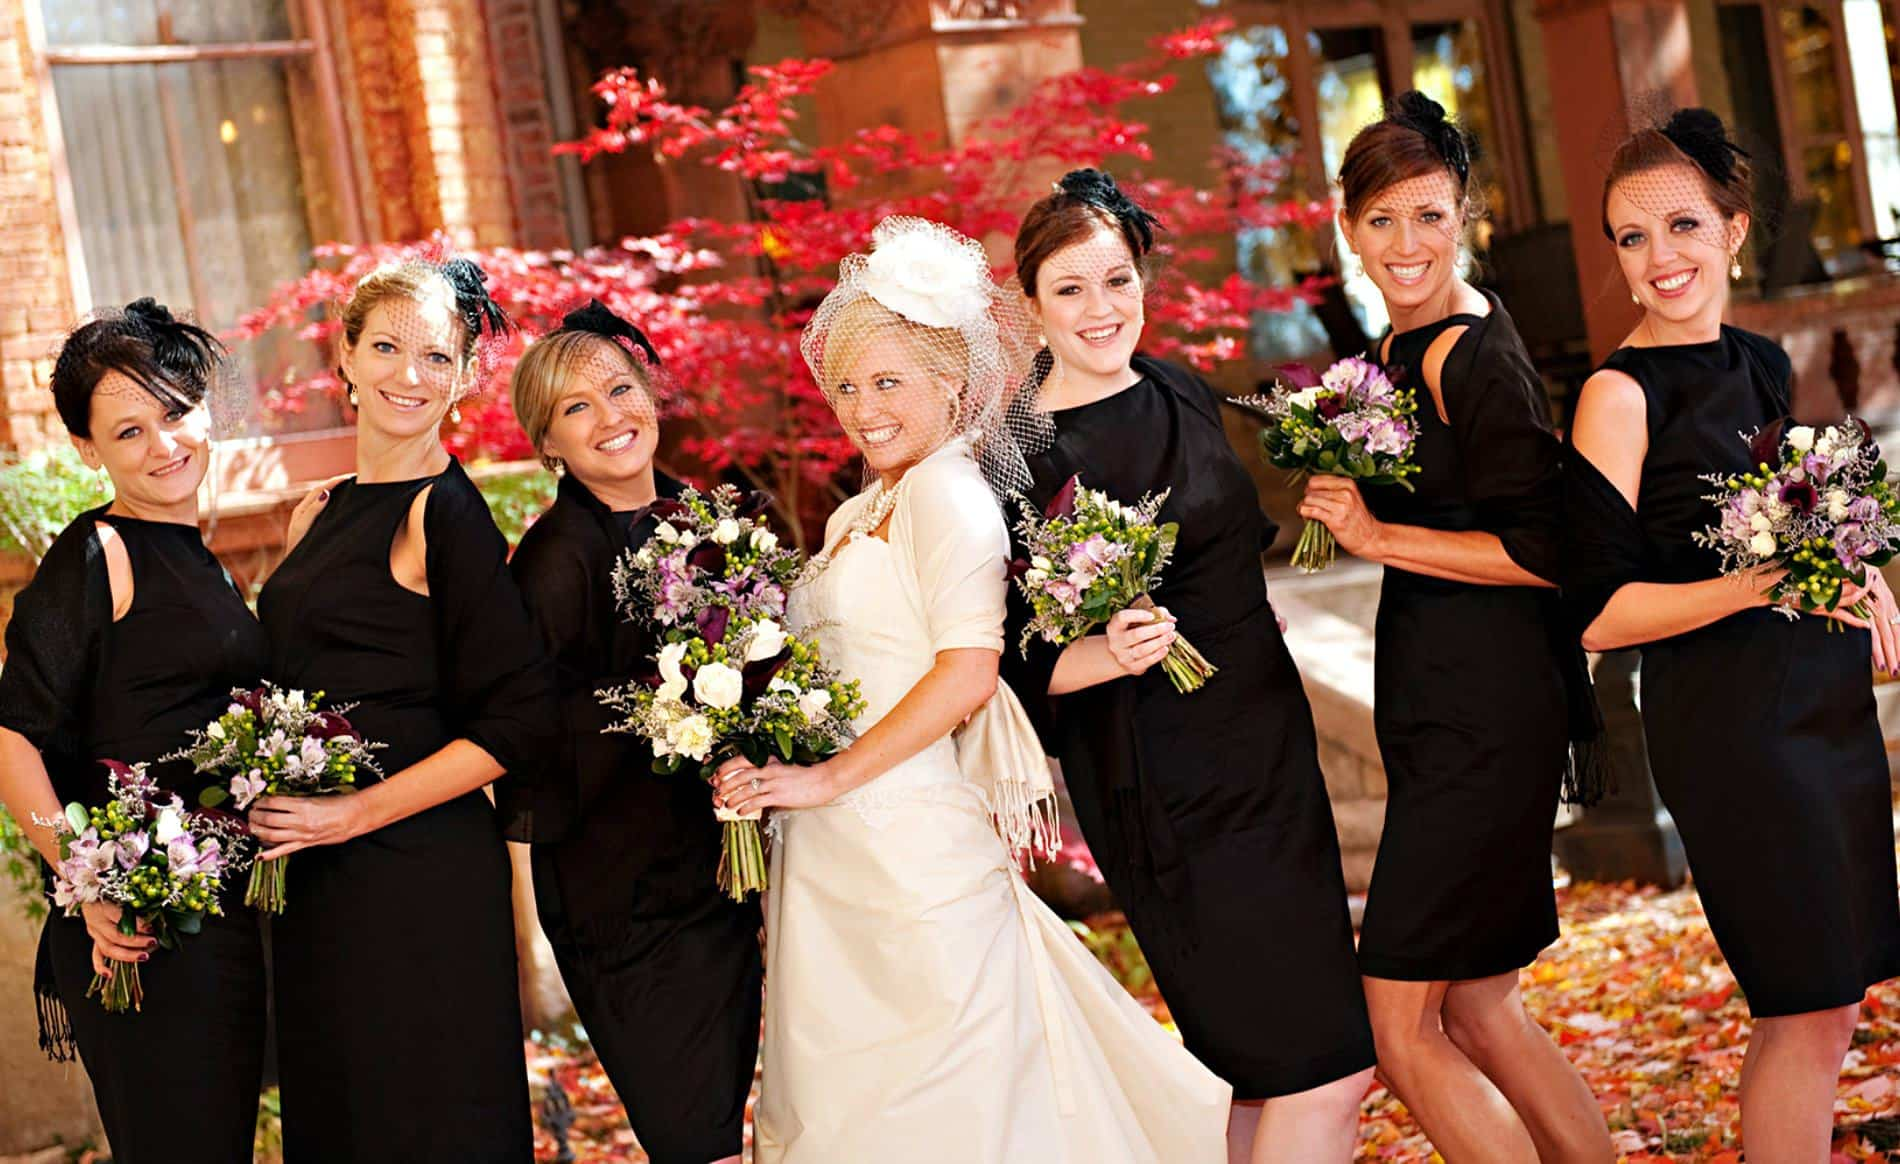 Smiling bride in white dress and veil flanked by three bridesmaids on each side wearing black dresses